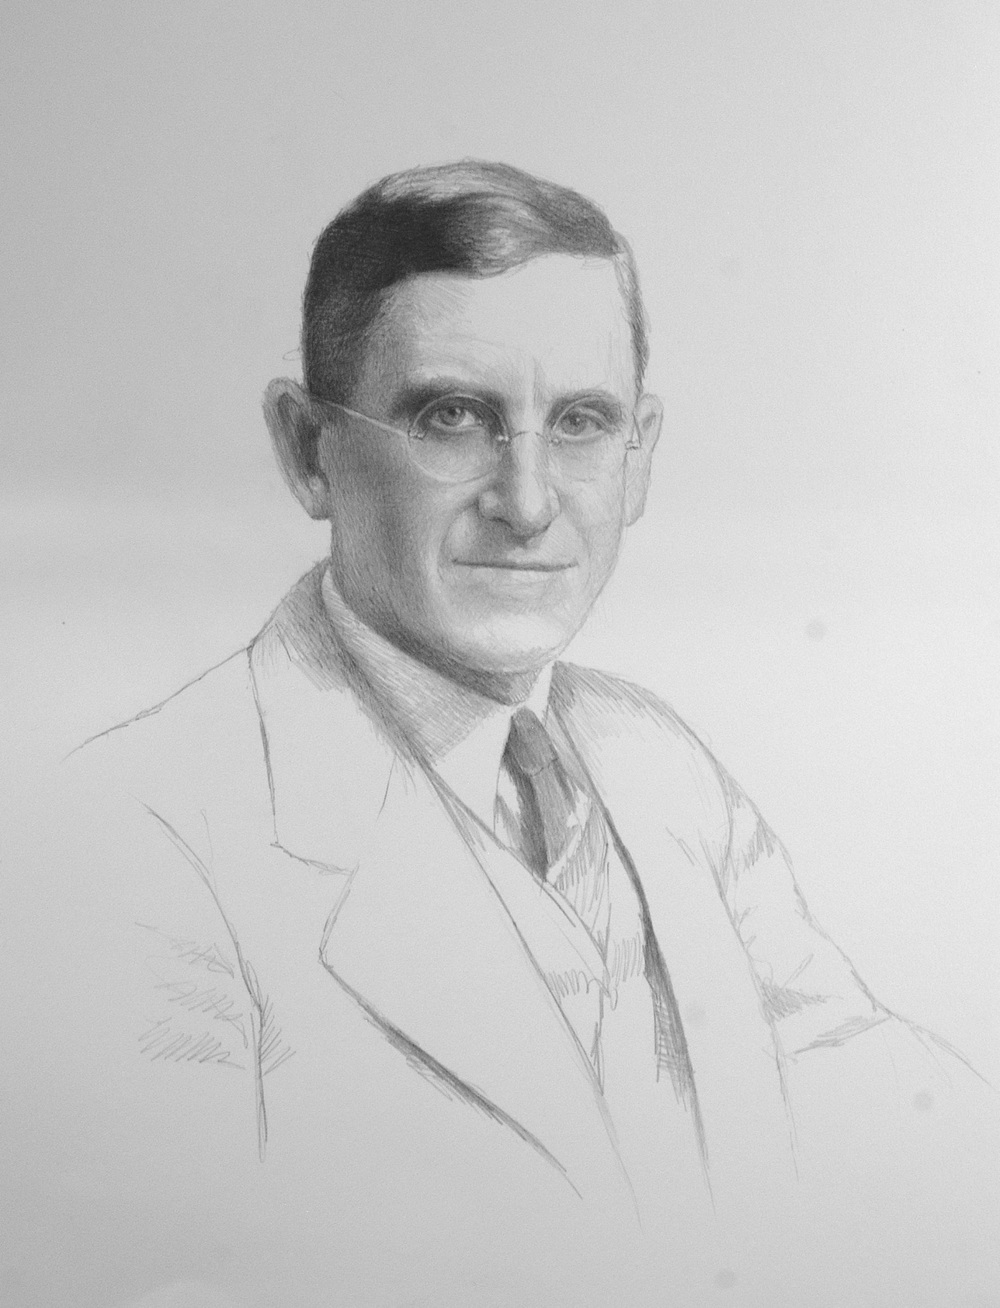 Harry Schenck, MD, UPENN School of Medicine